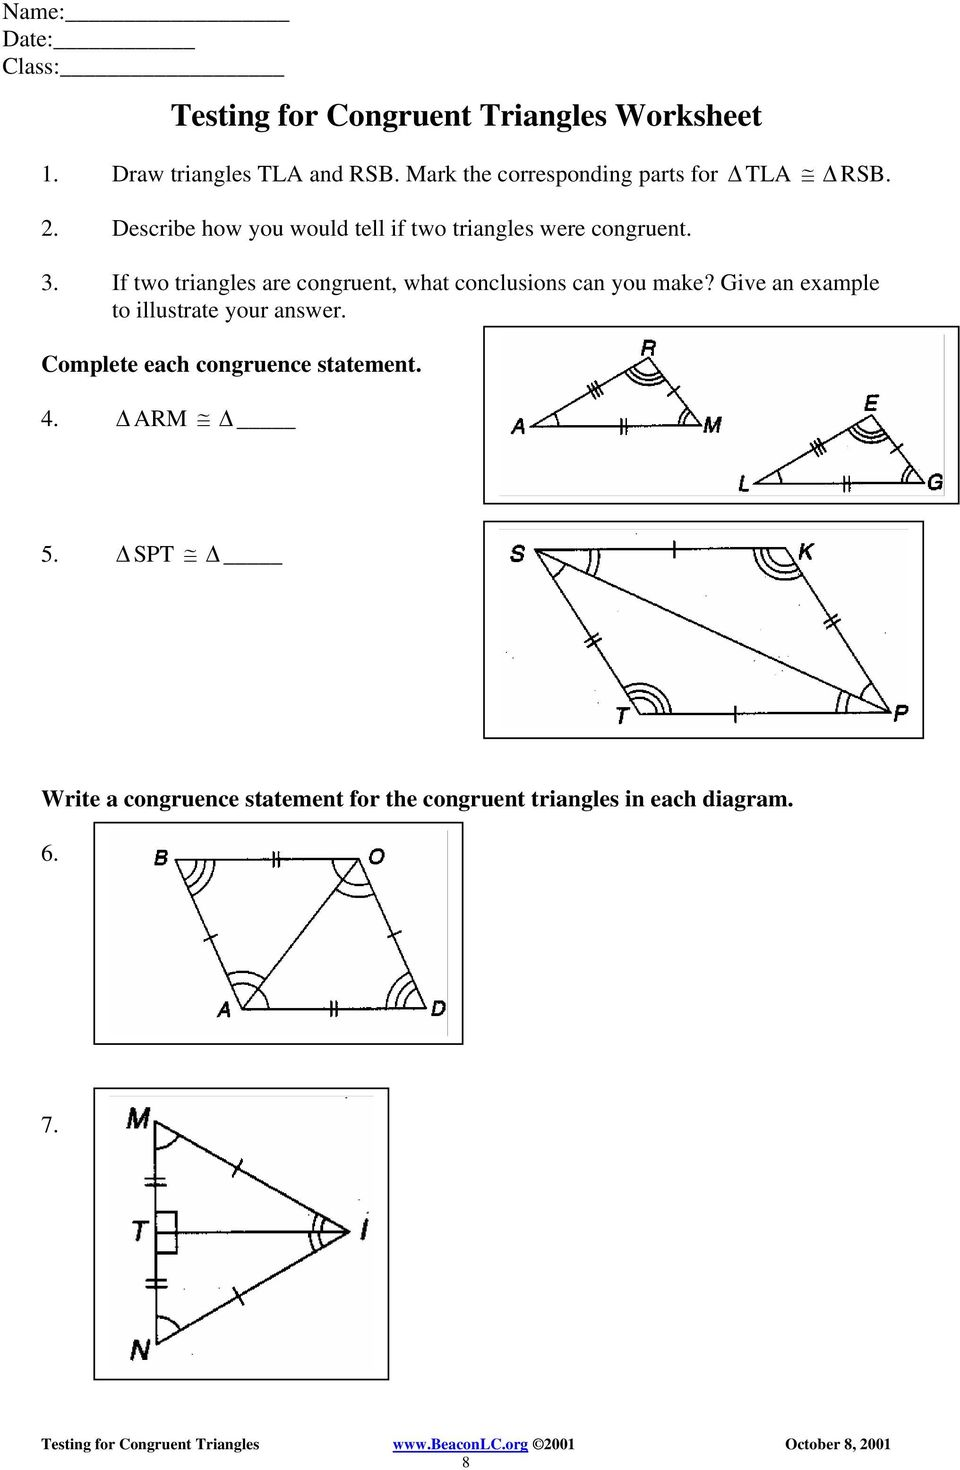 write a congruence statement for the pair of triangles that are similar